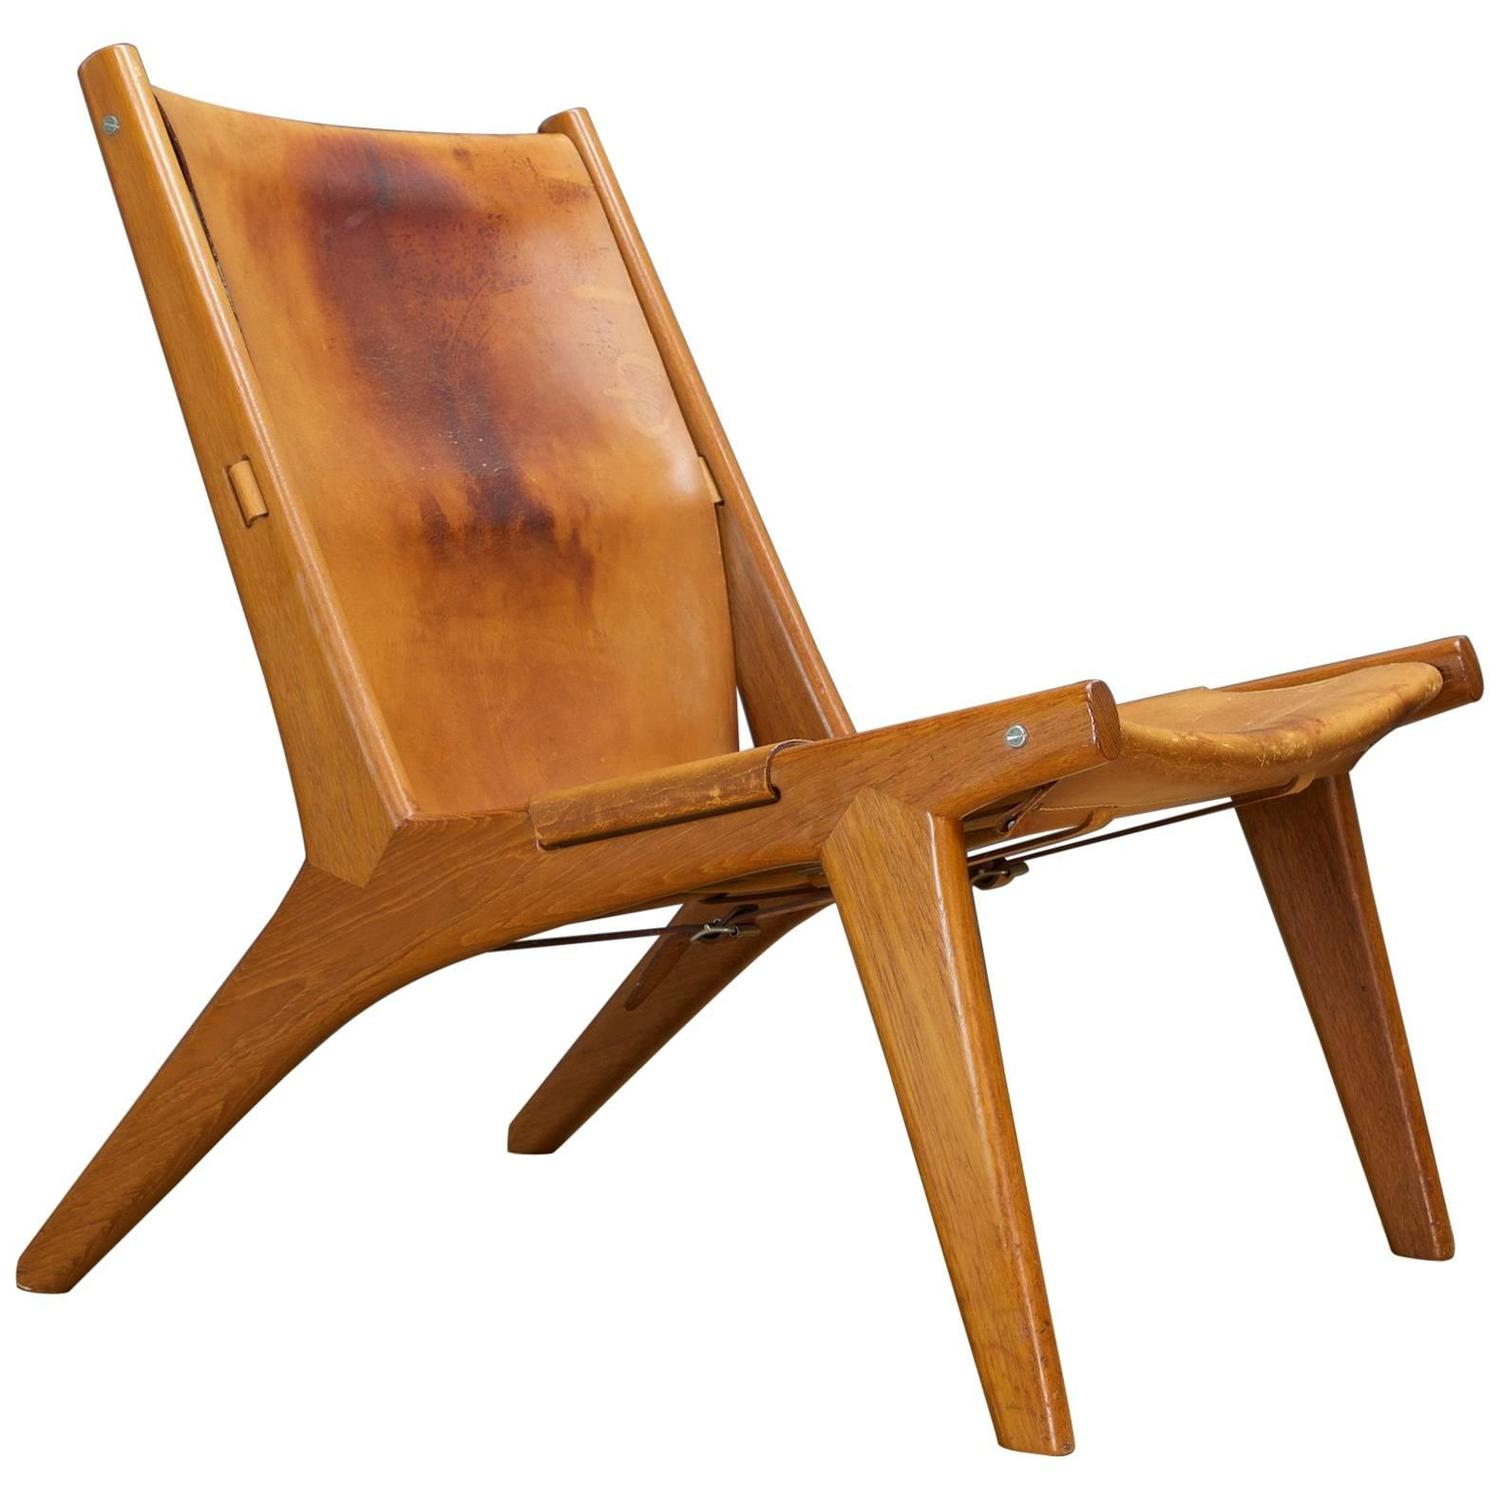 Hunting Chair by Uno and –sten Kristiansson for Luxus Sweden 1954